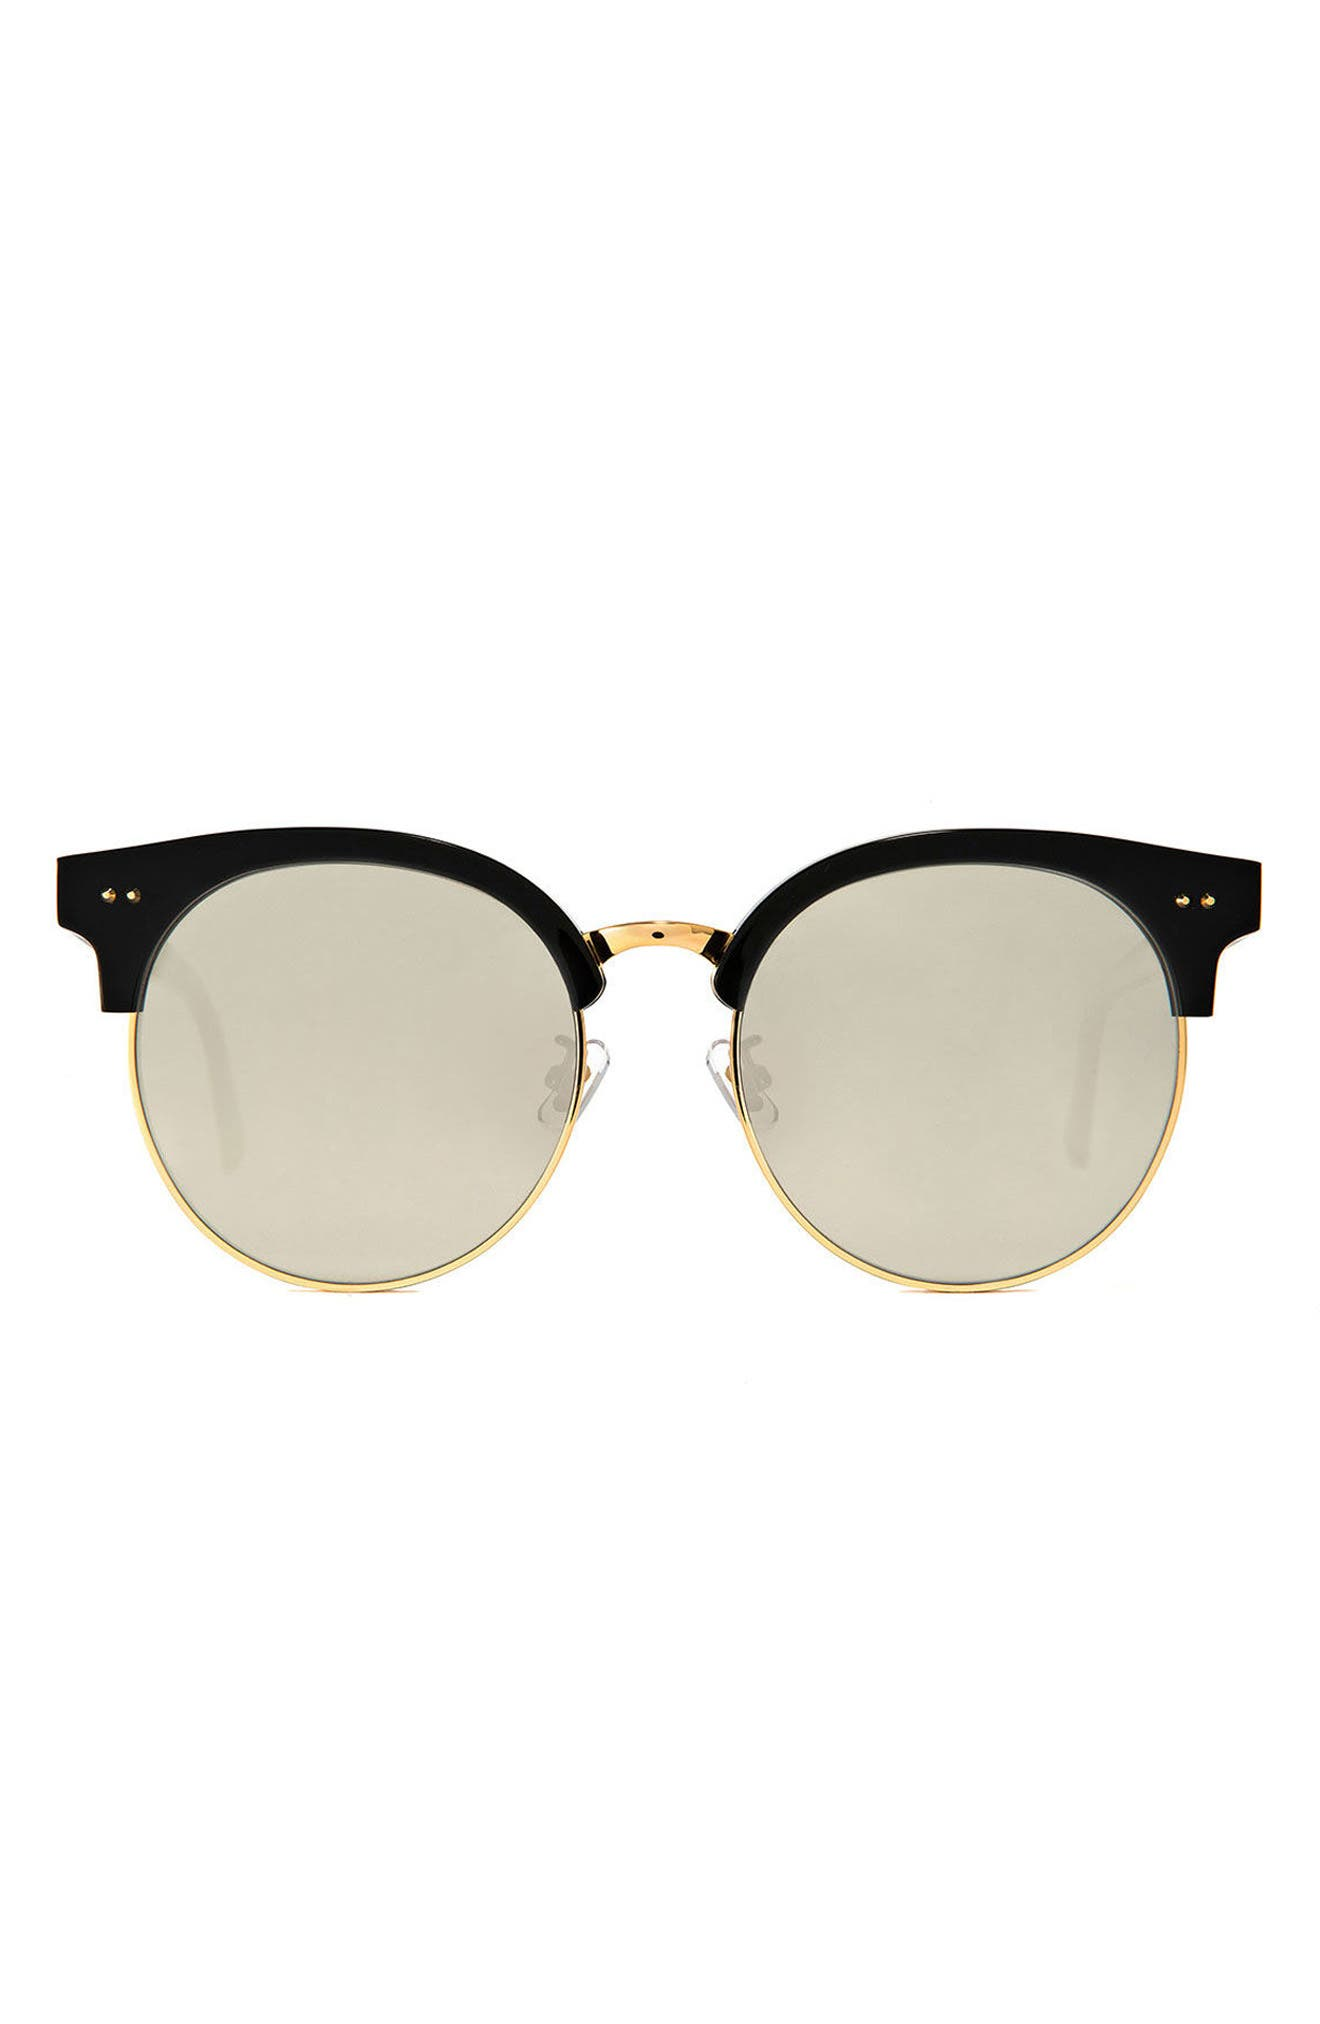 Moon Cut 55mm Sunglasses,                         Main,                         color, Black/Gold